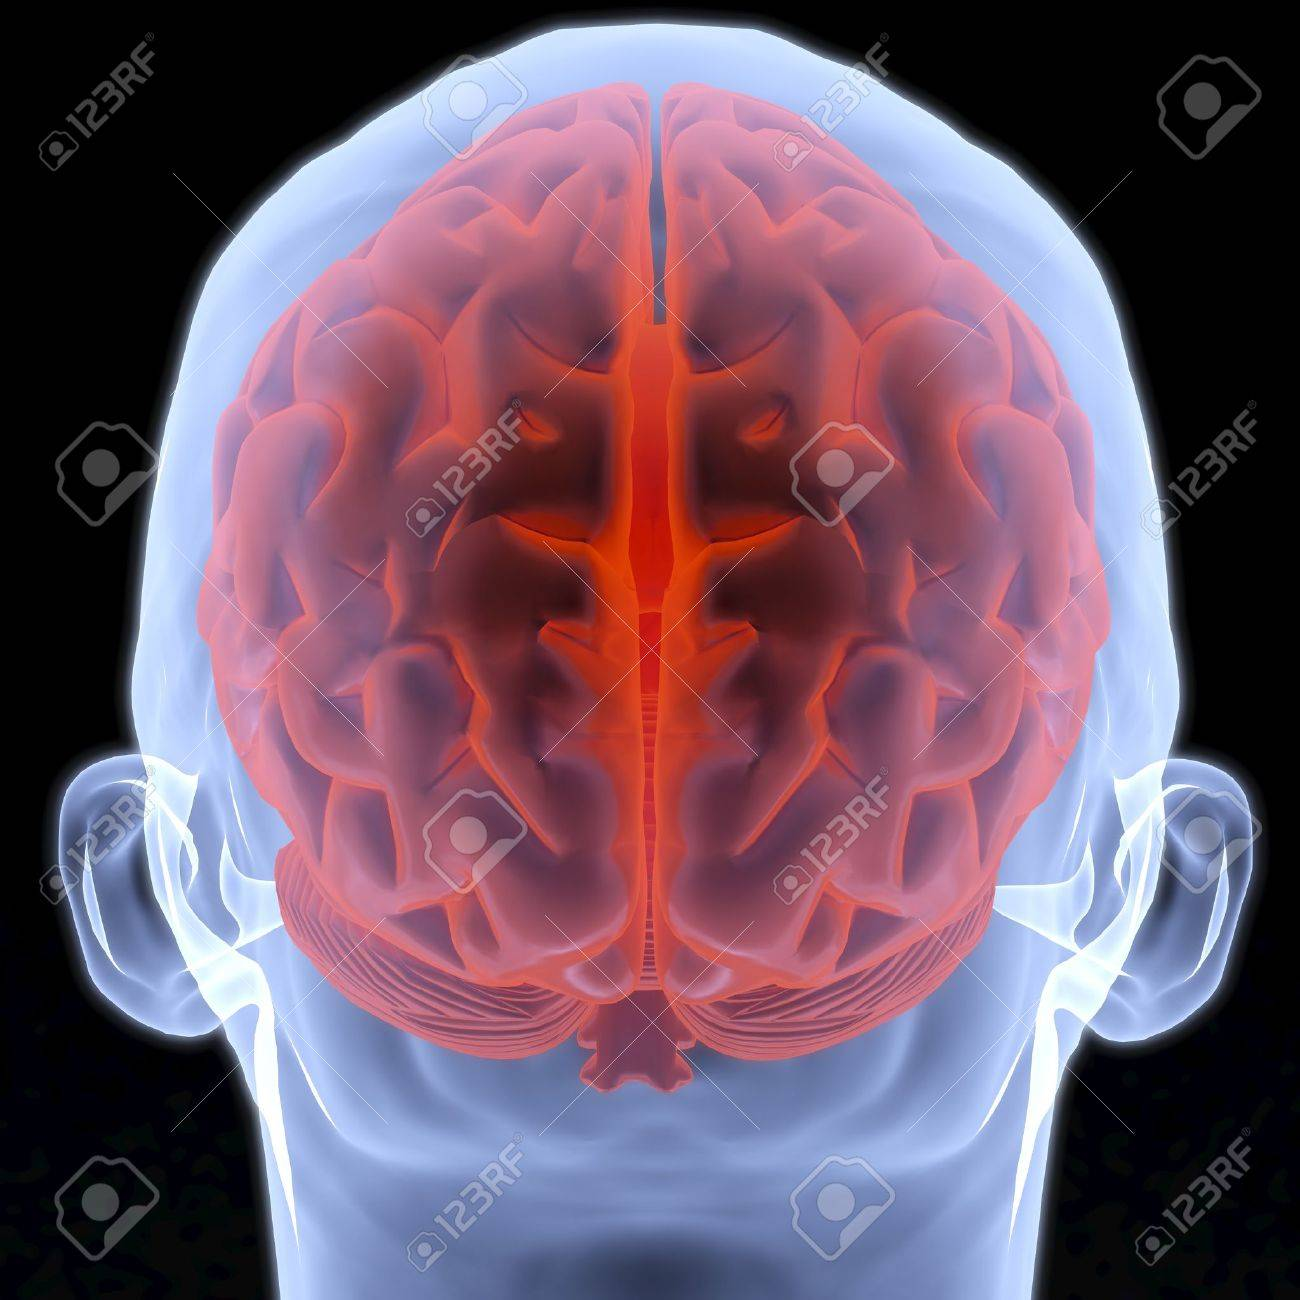 Scanning of a human brain by X-rays. 3d image. Stock Photo - 7969116